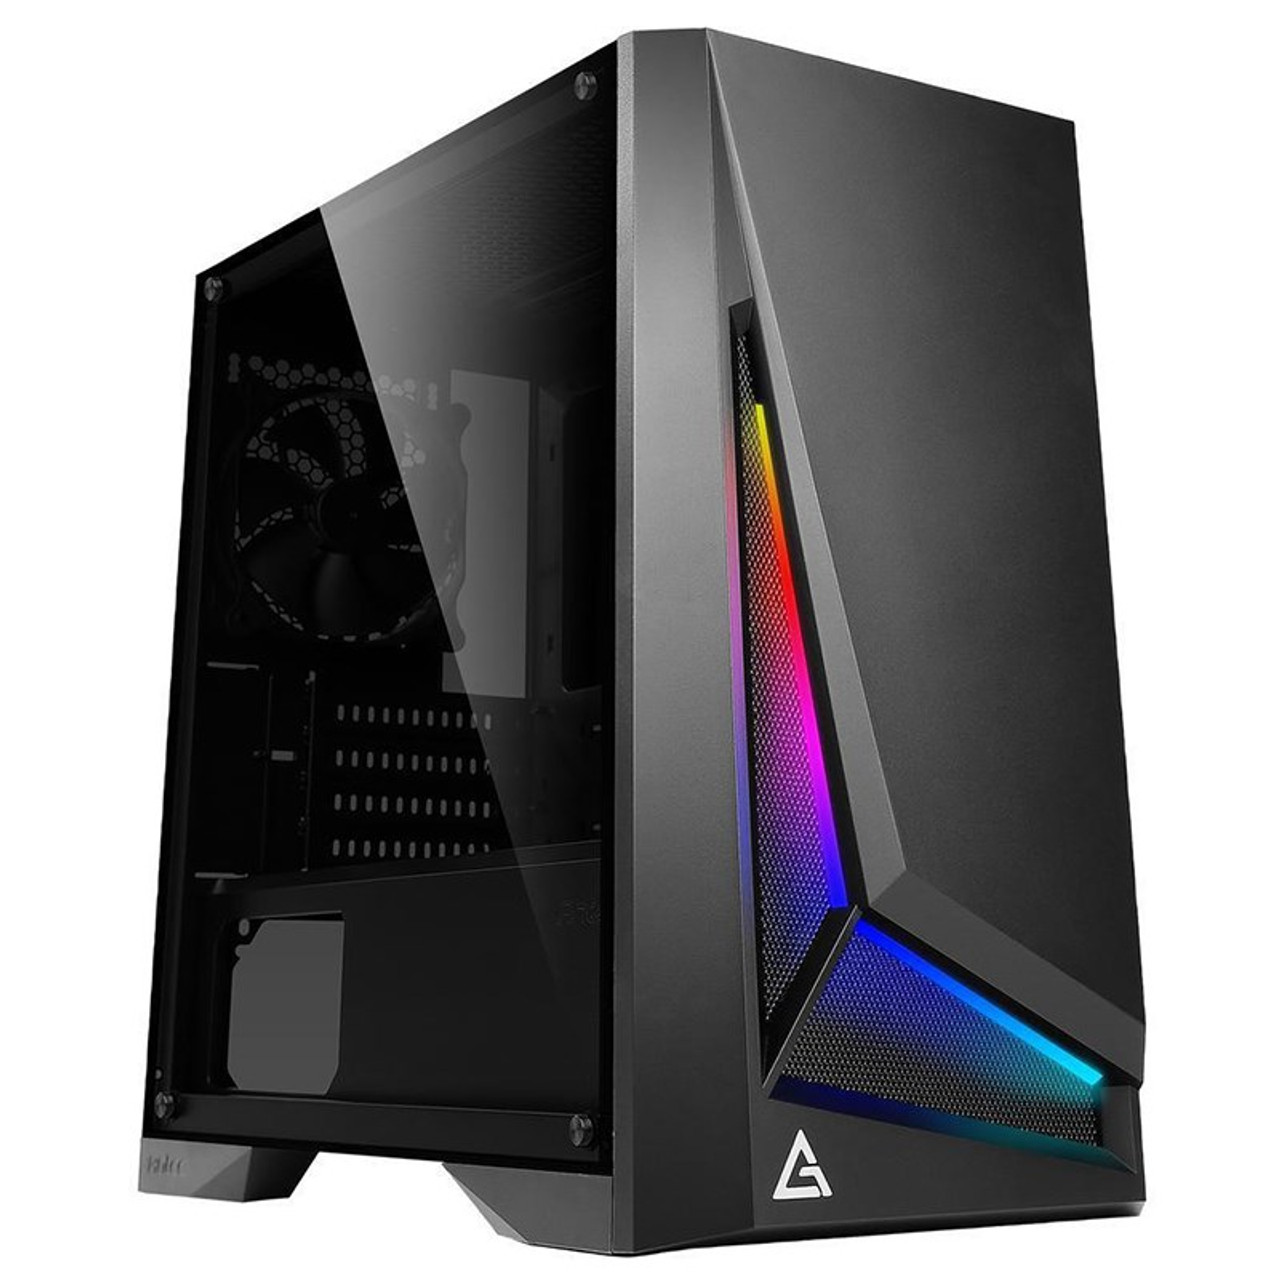 Product image for Antec DP301M ARGB Tempered Glass Compact Micro-ATX Case | CX Computer Superstore